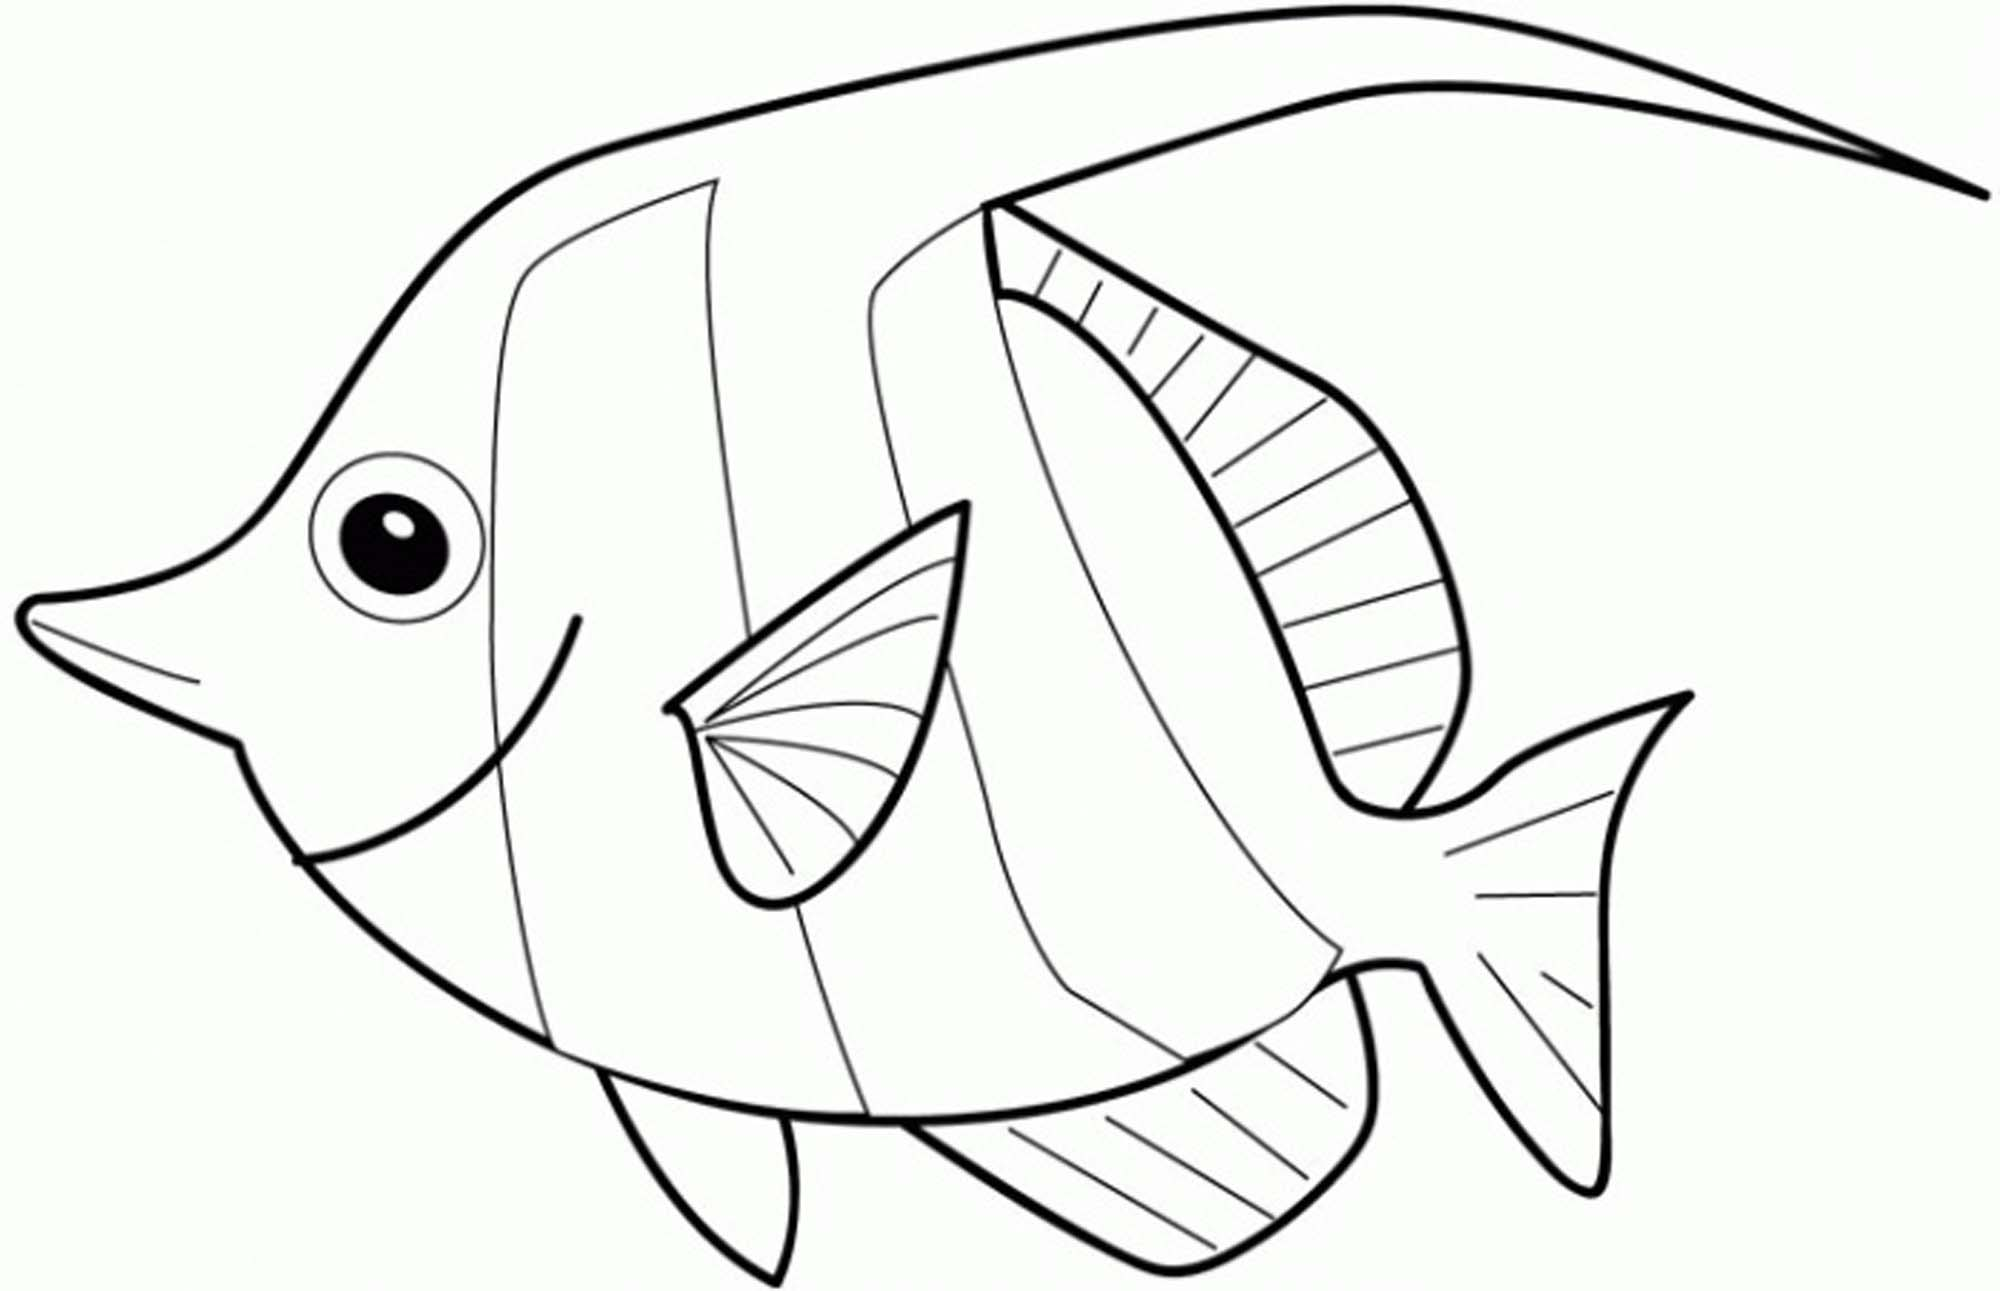 shop related products - Rainbow Fish Coloring Pages